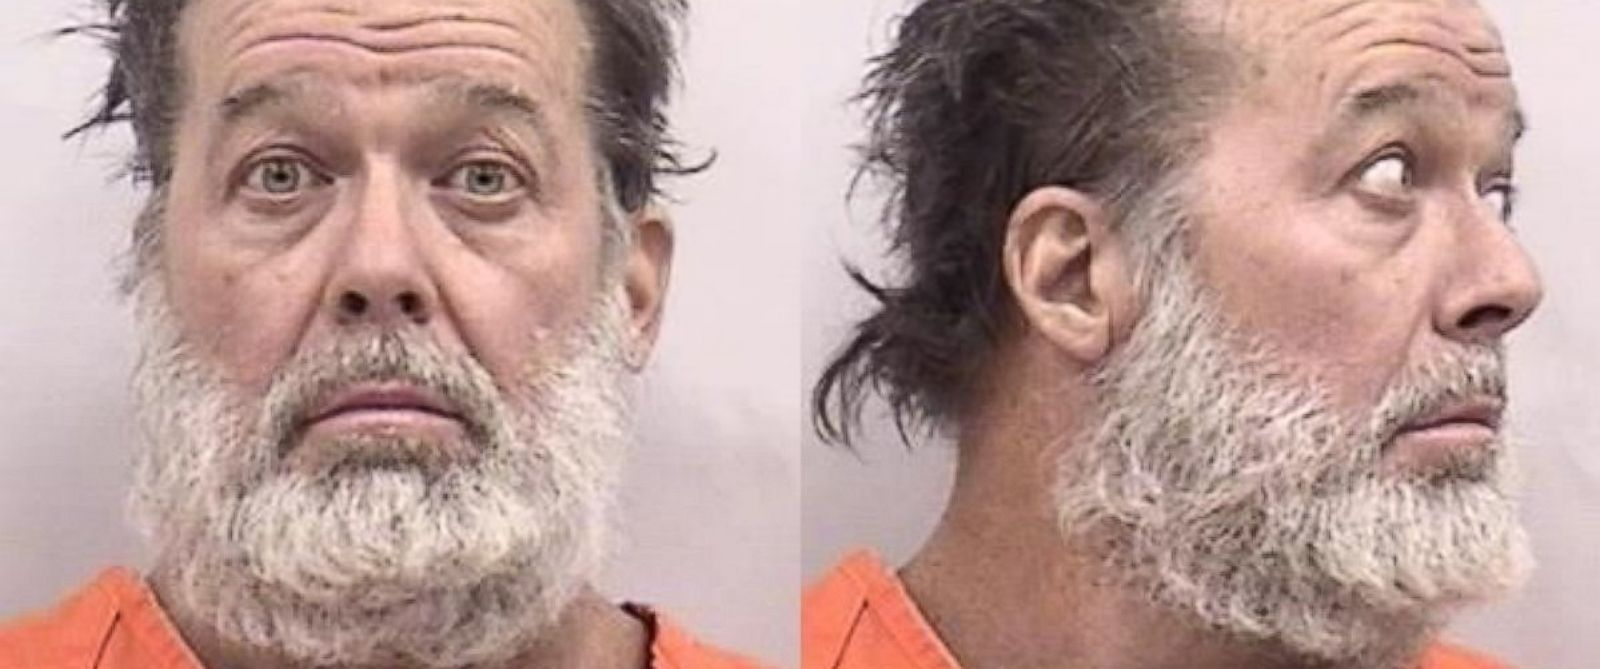 PHOTO: Robert Lewis Dear of North Carolina is seen in these undated photos provided by the El Paso County Sheriffs Office.